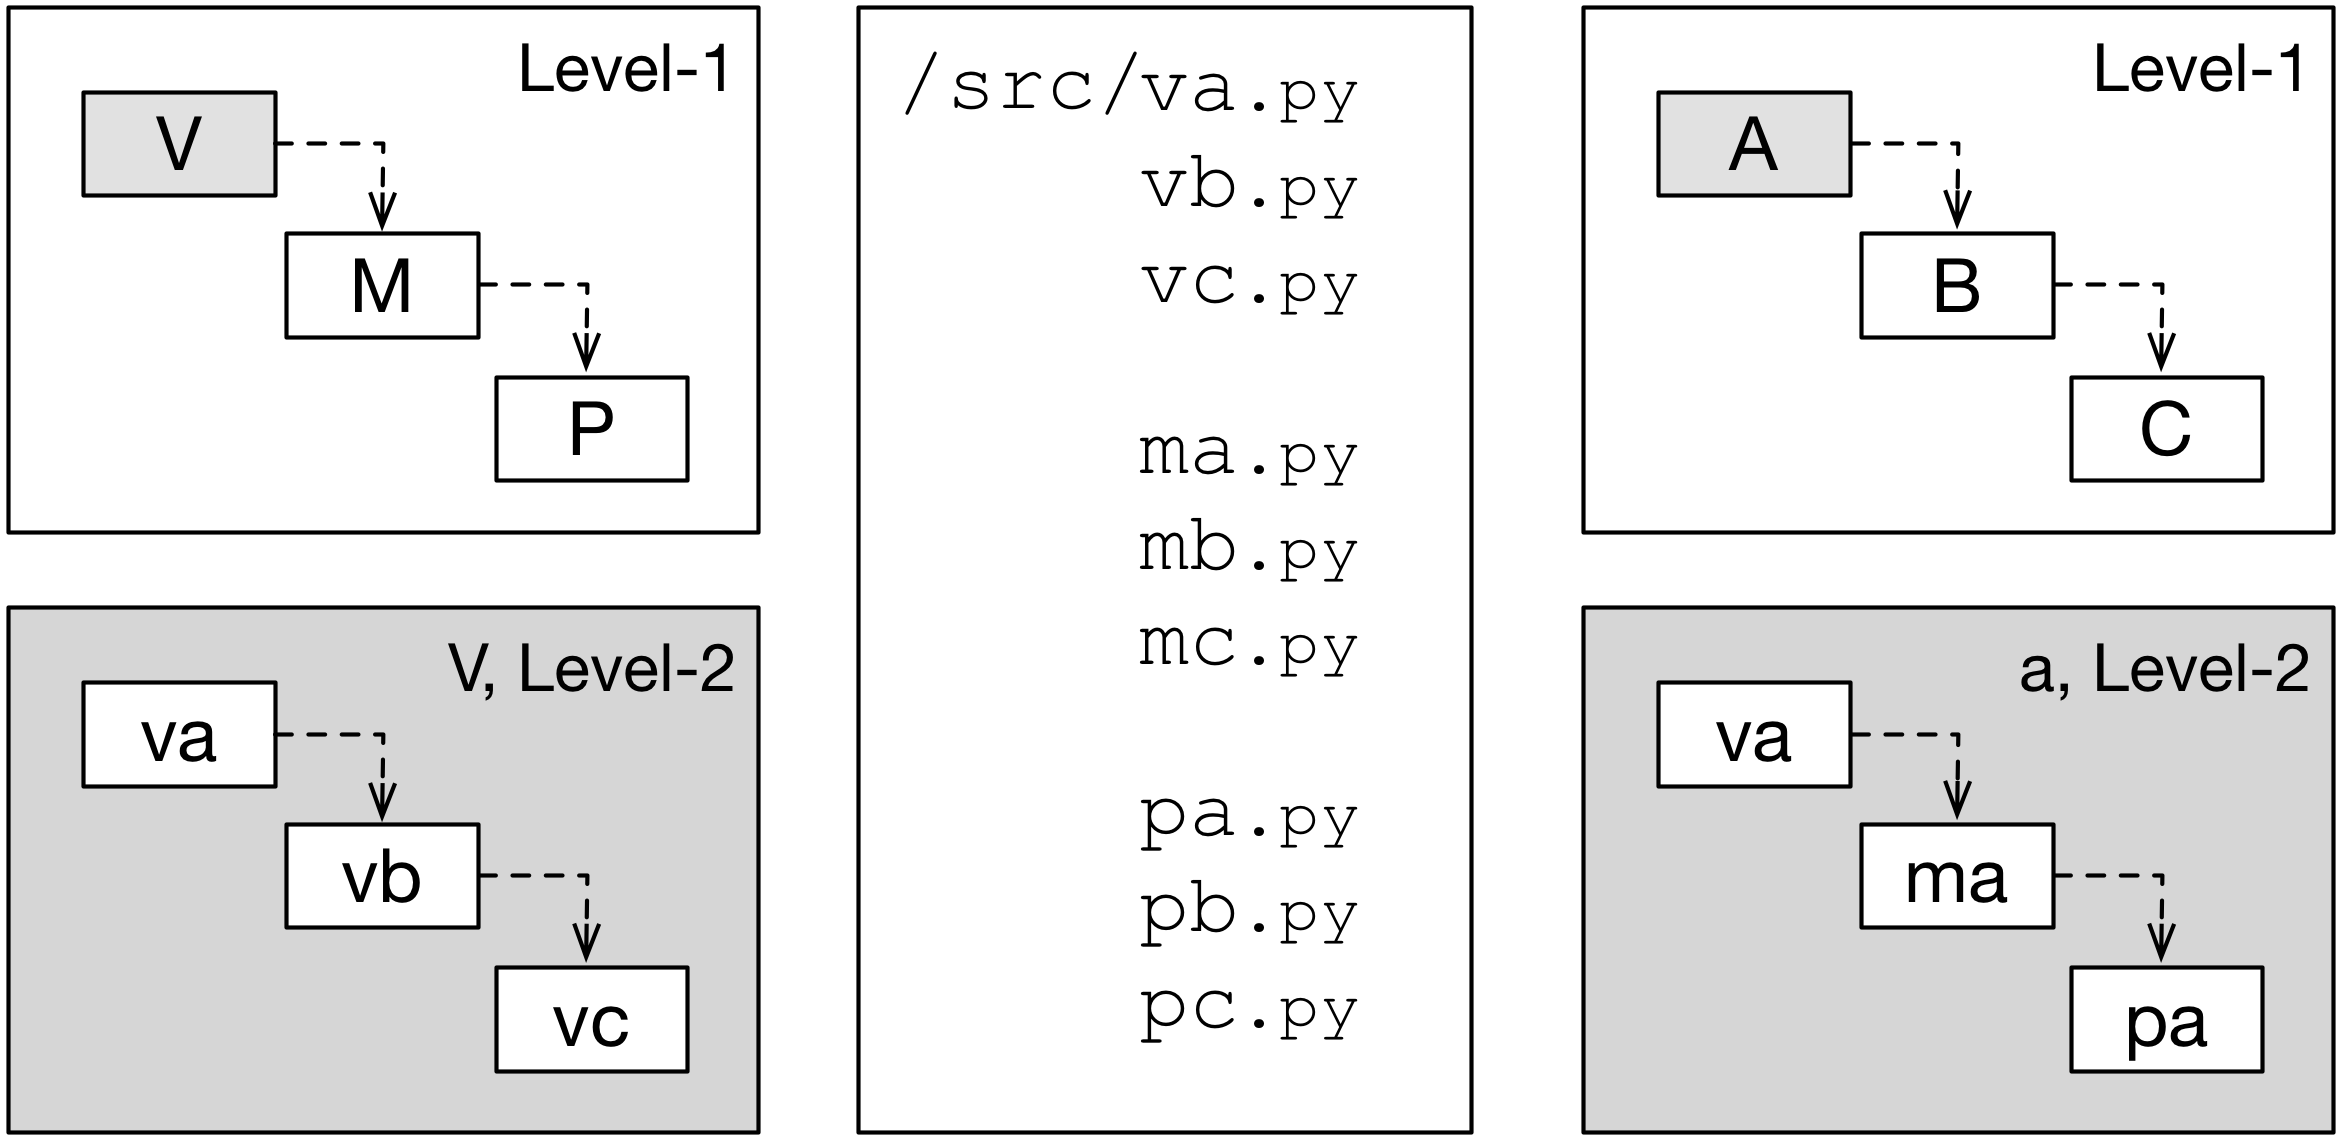 Different mappings of code to building blocks